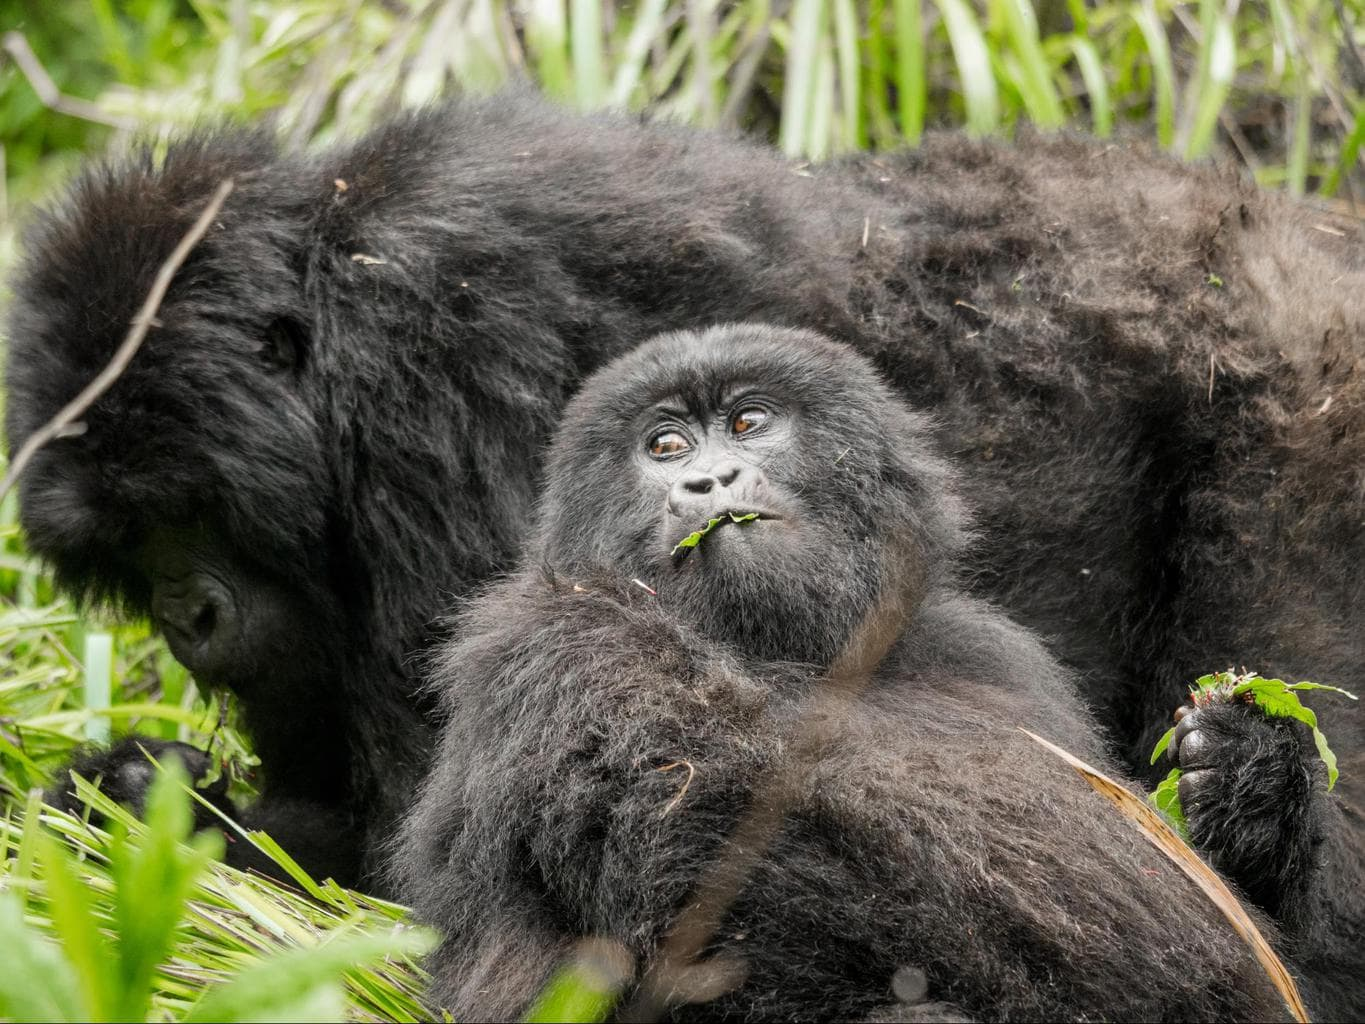 Young gorilla eating leaves